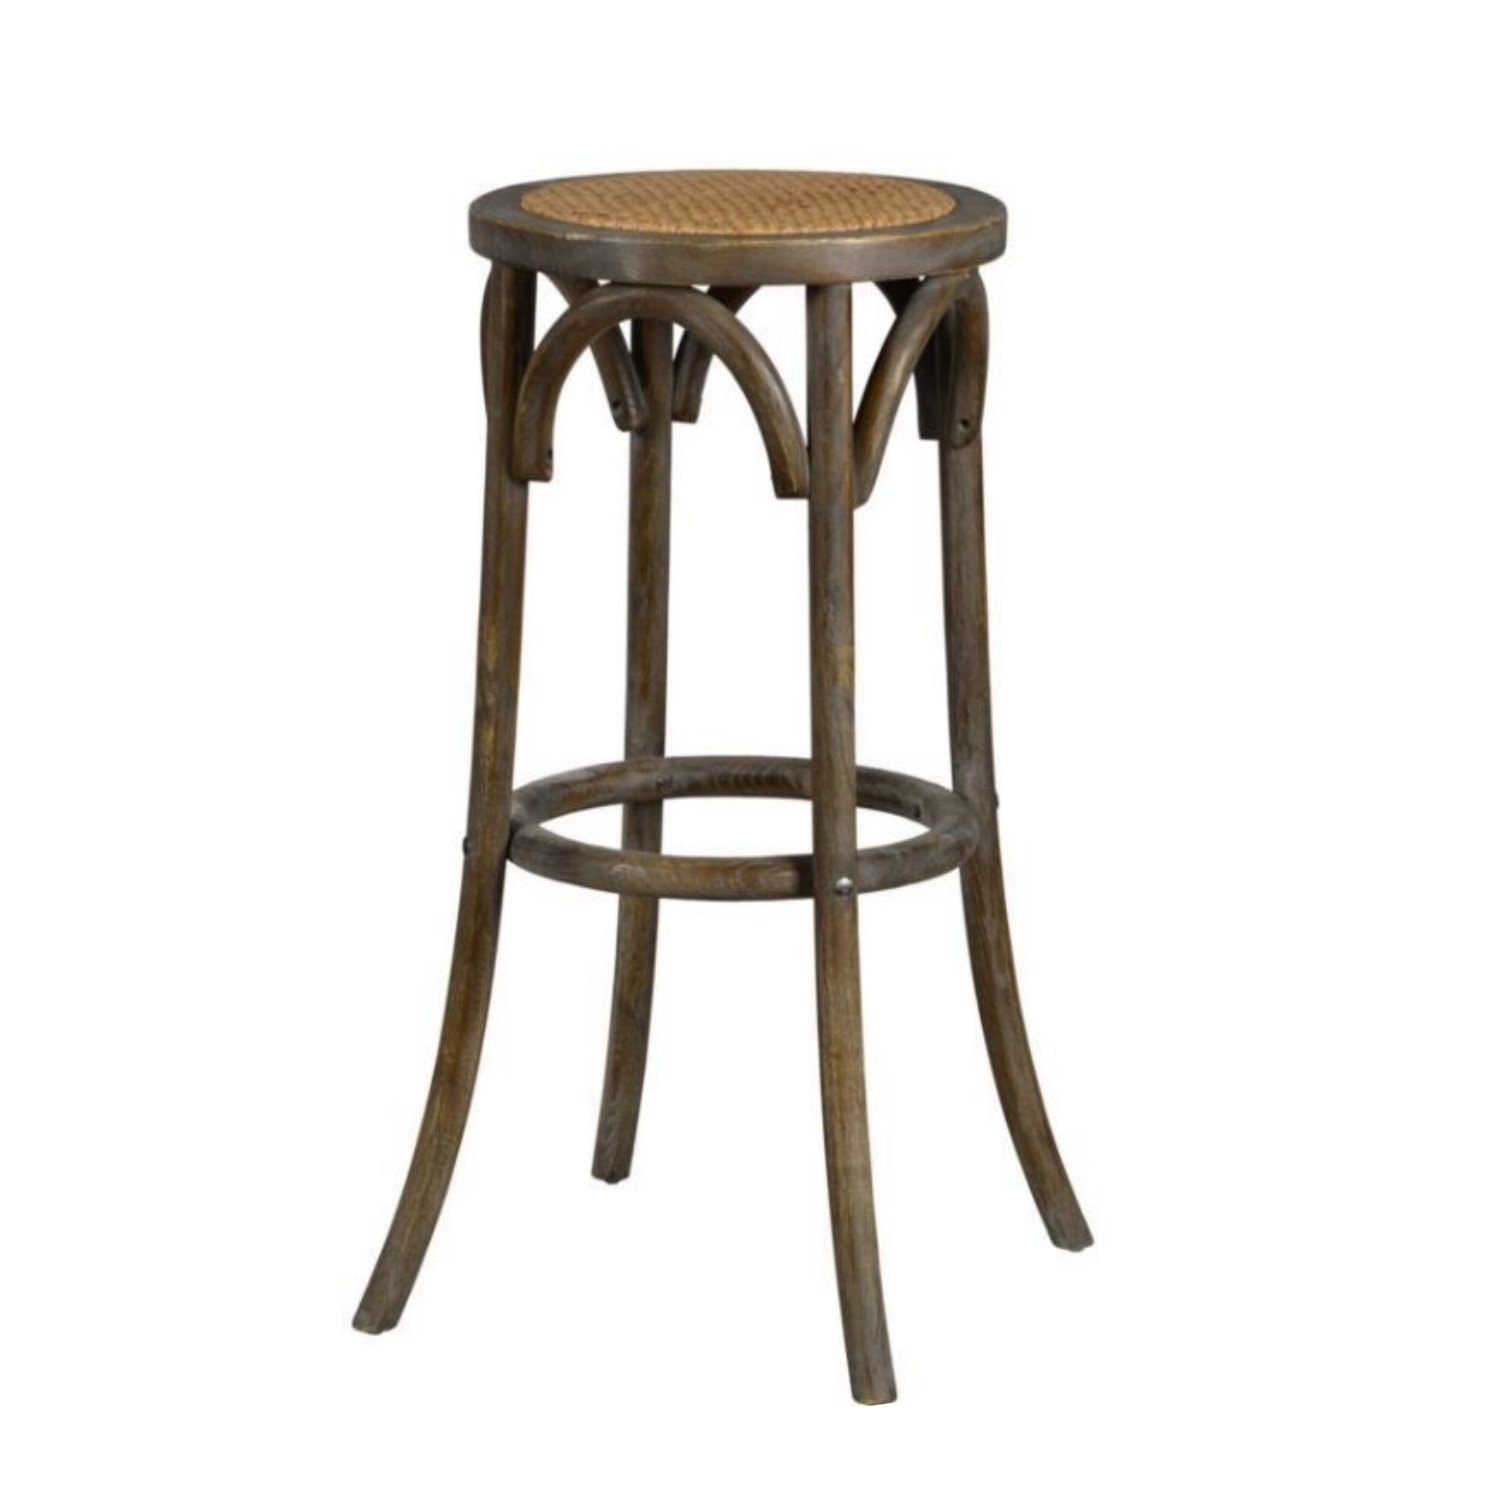 Backless Bar Stool Country Style Wood And Rattan Construction Tavern Pub Seating